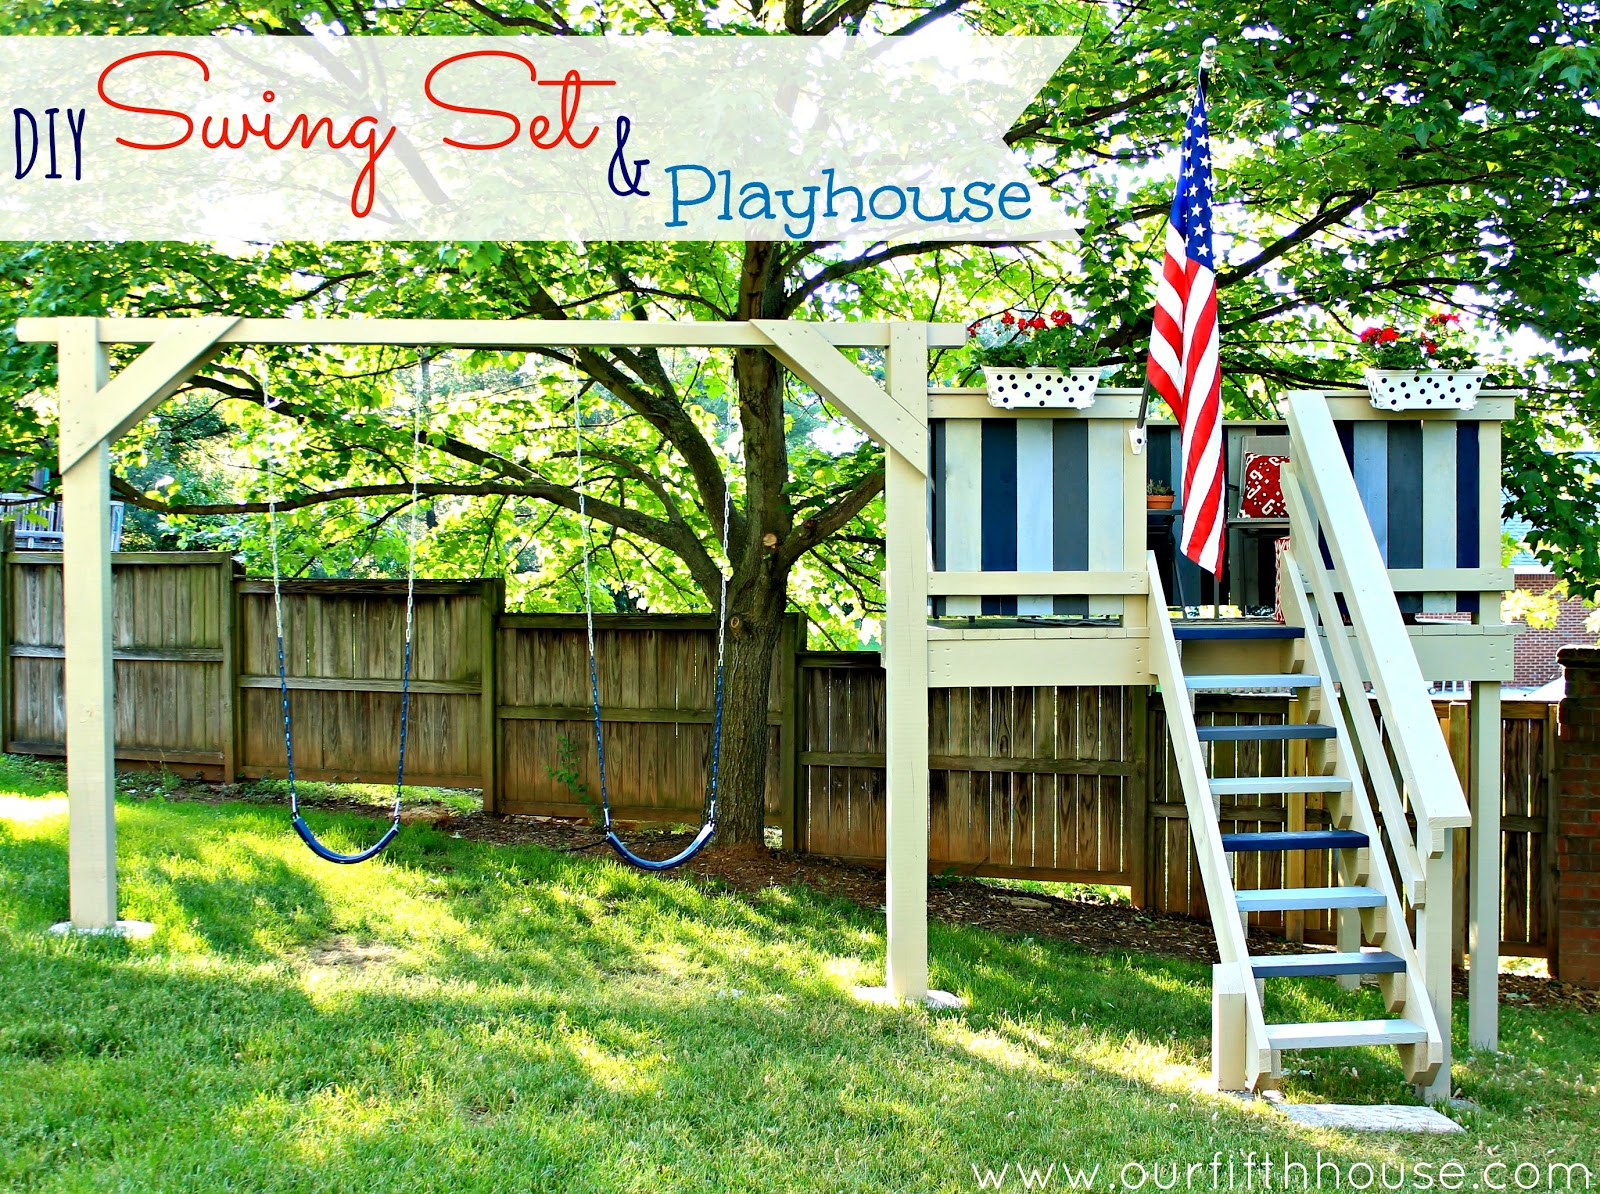 Diy swing set playhouse our fifth house for Playhouse plans free